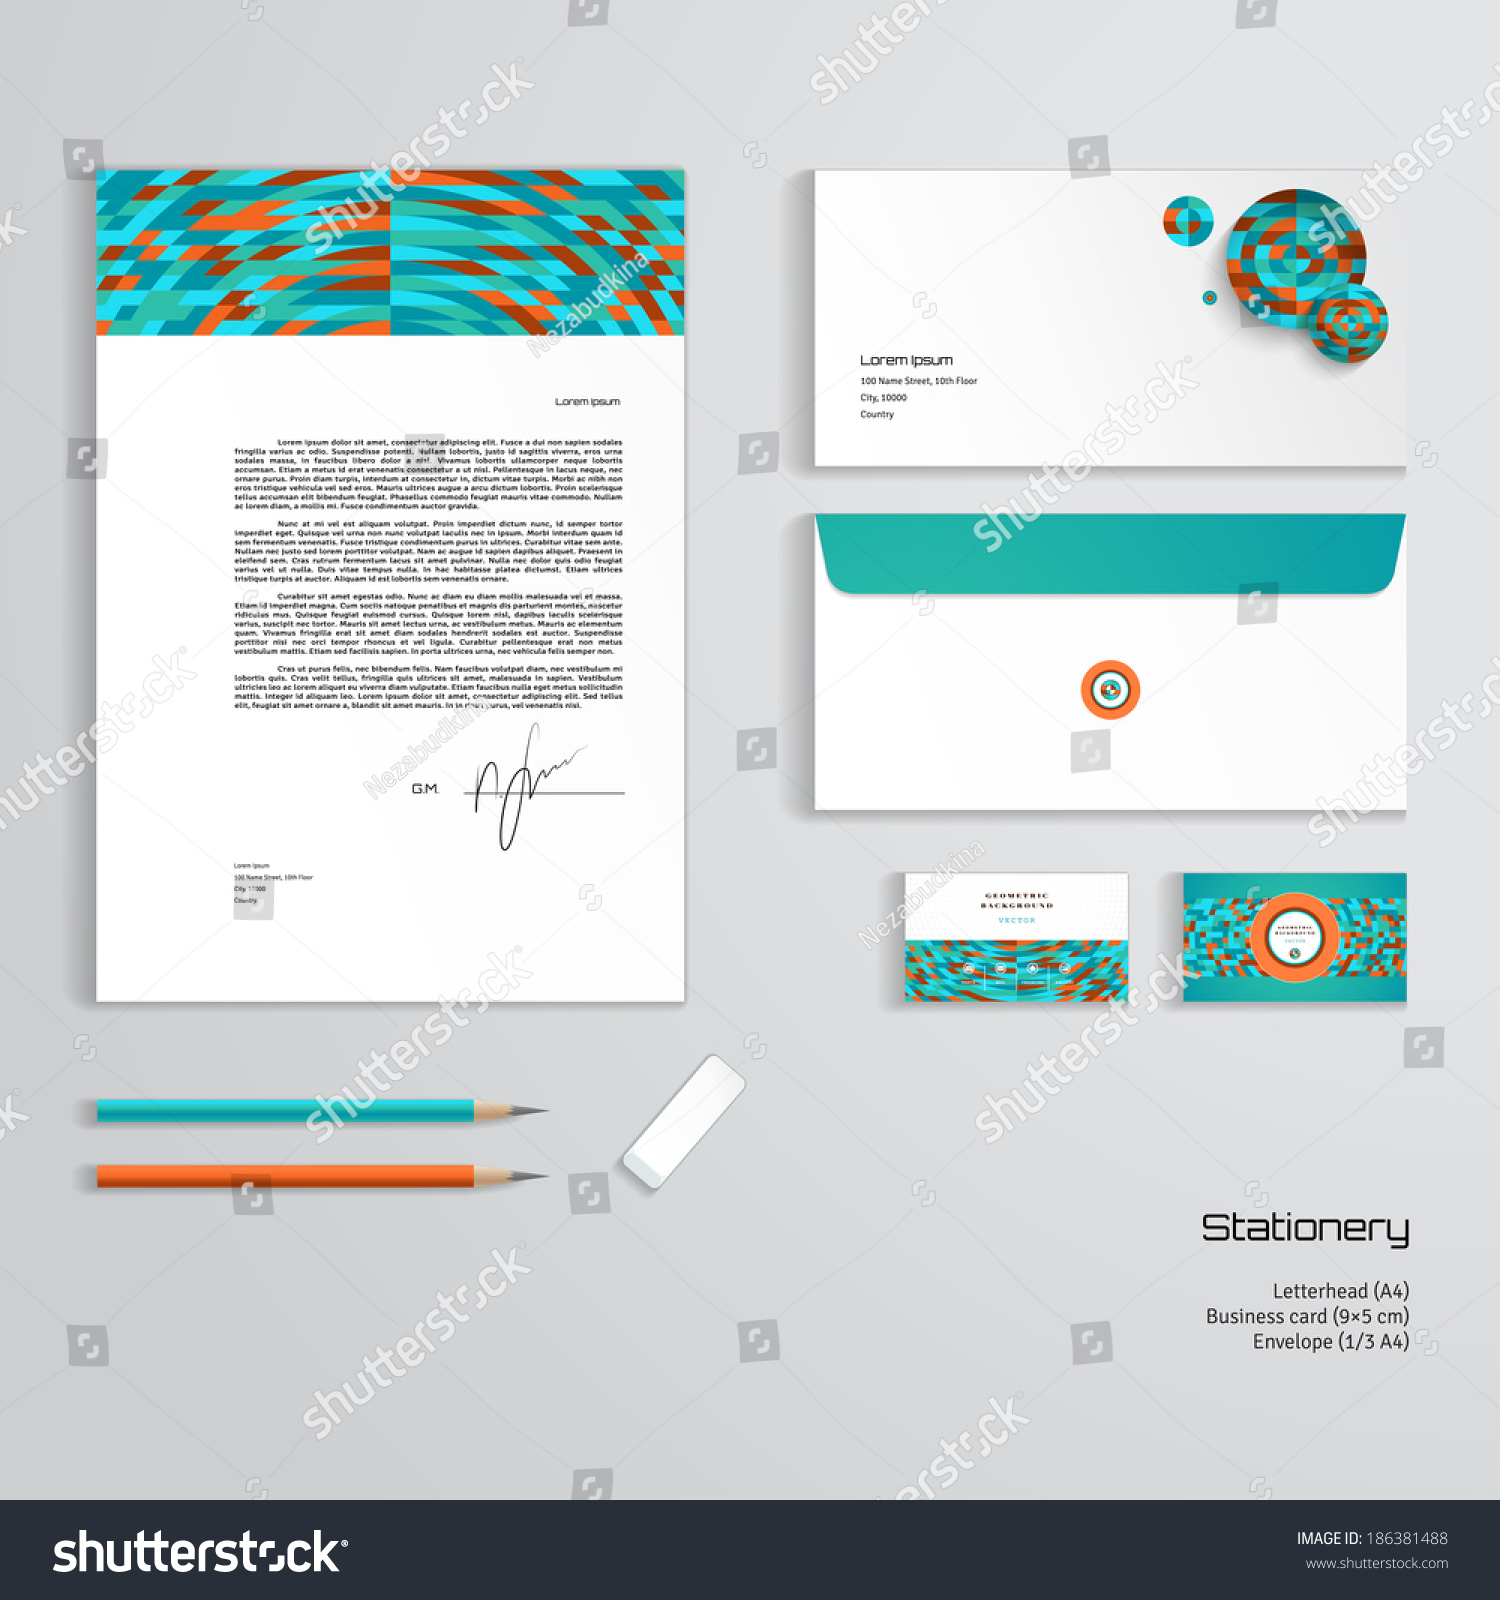 Vector Identity Templates Multicolored Geometric Ornament Stock ...